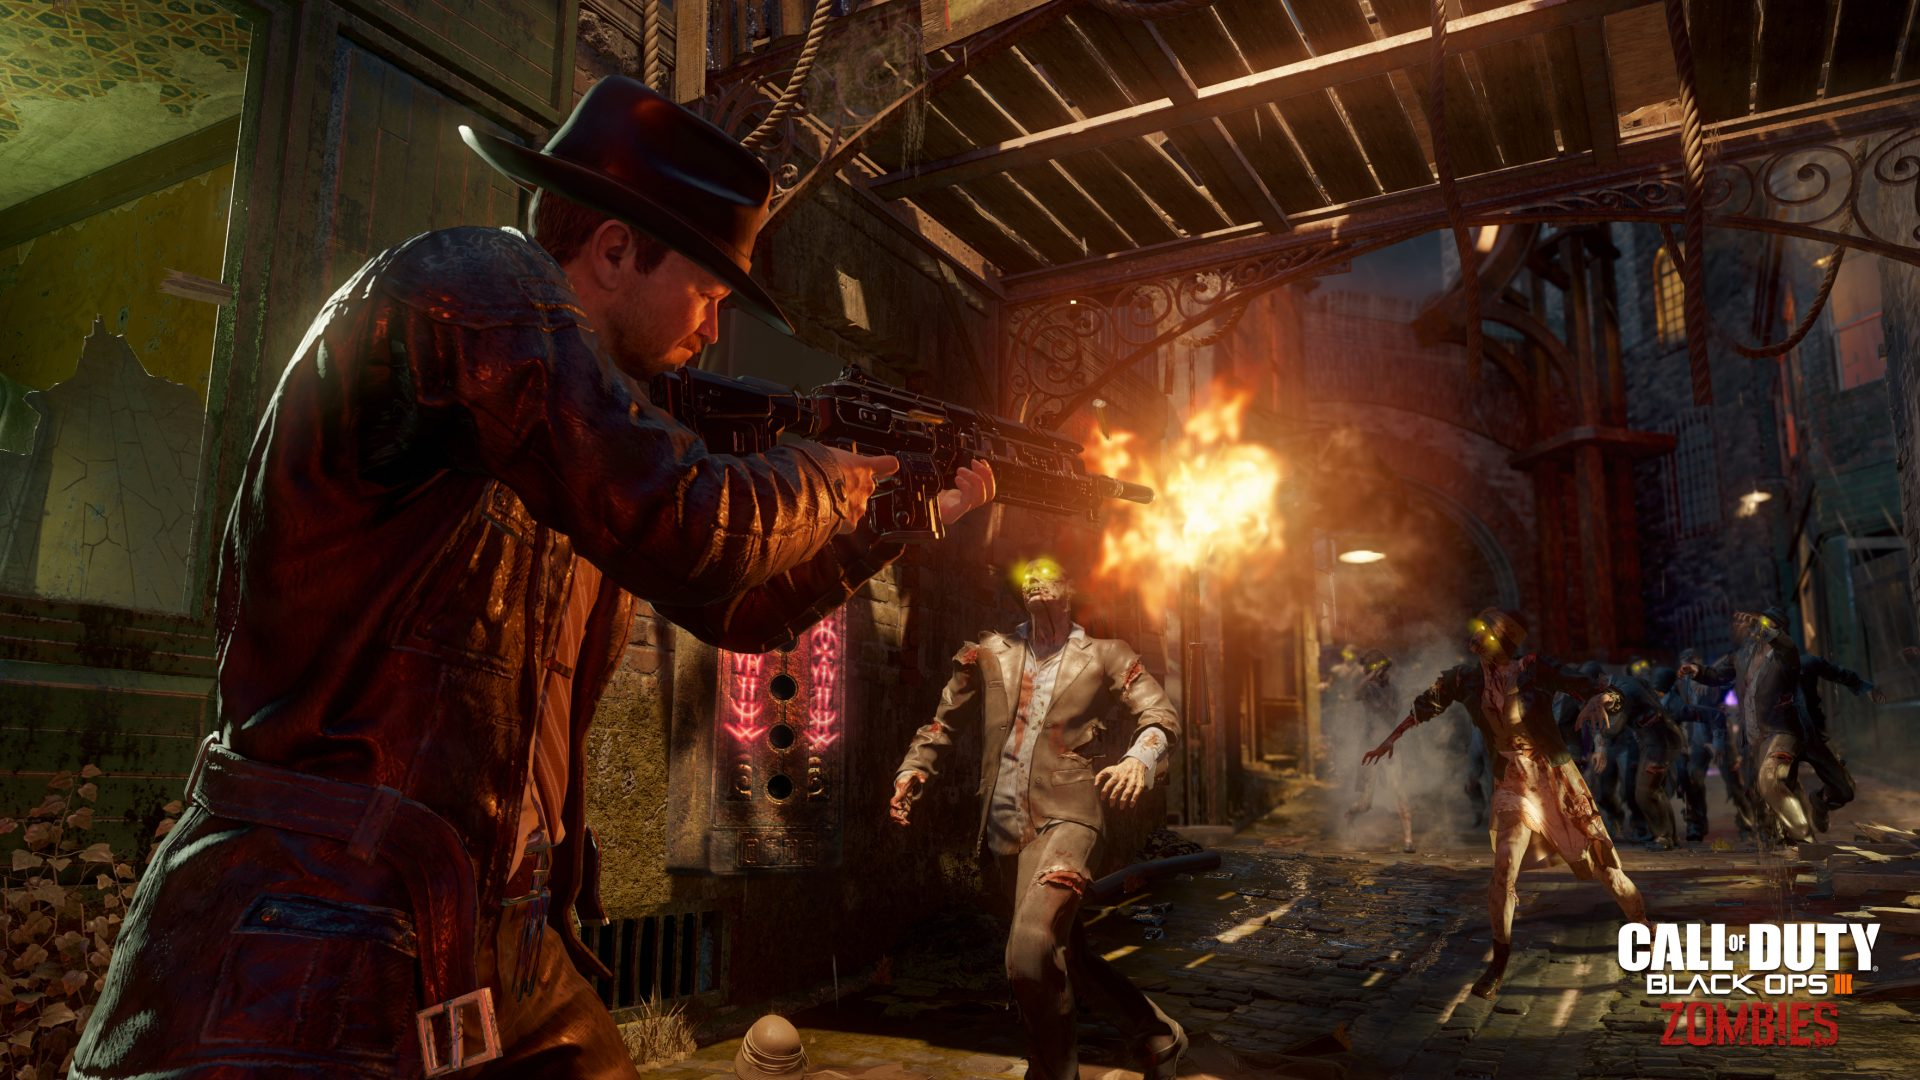 Call Of Duty: Black Ops III Shadows Of Evil Zombies Trailer